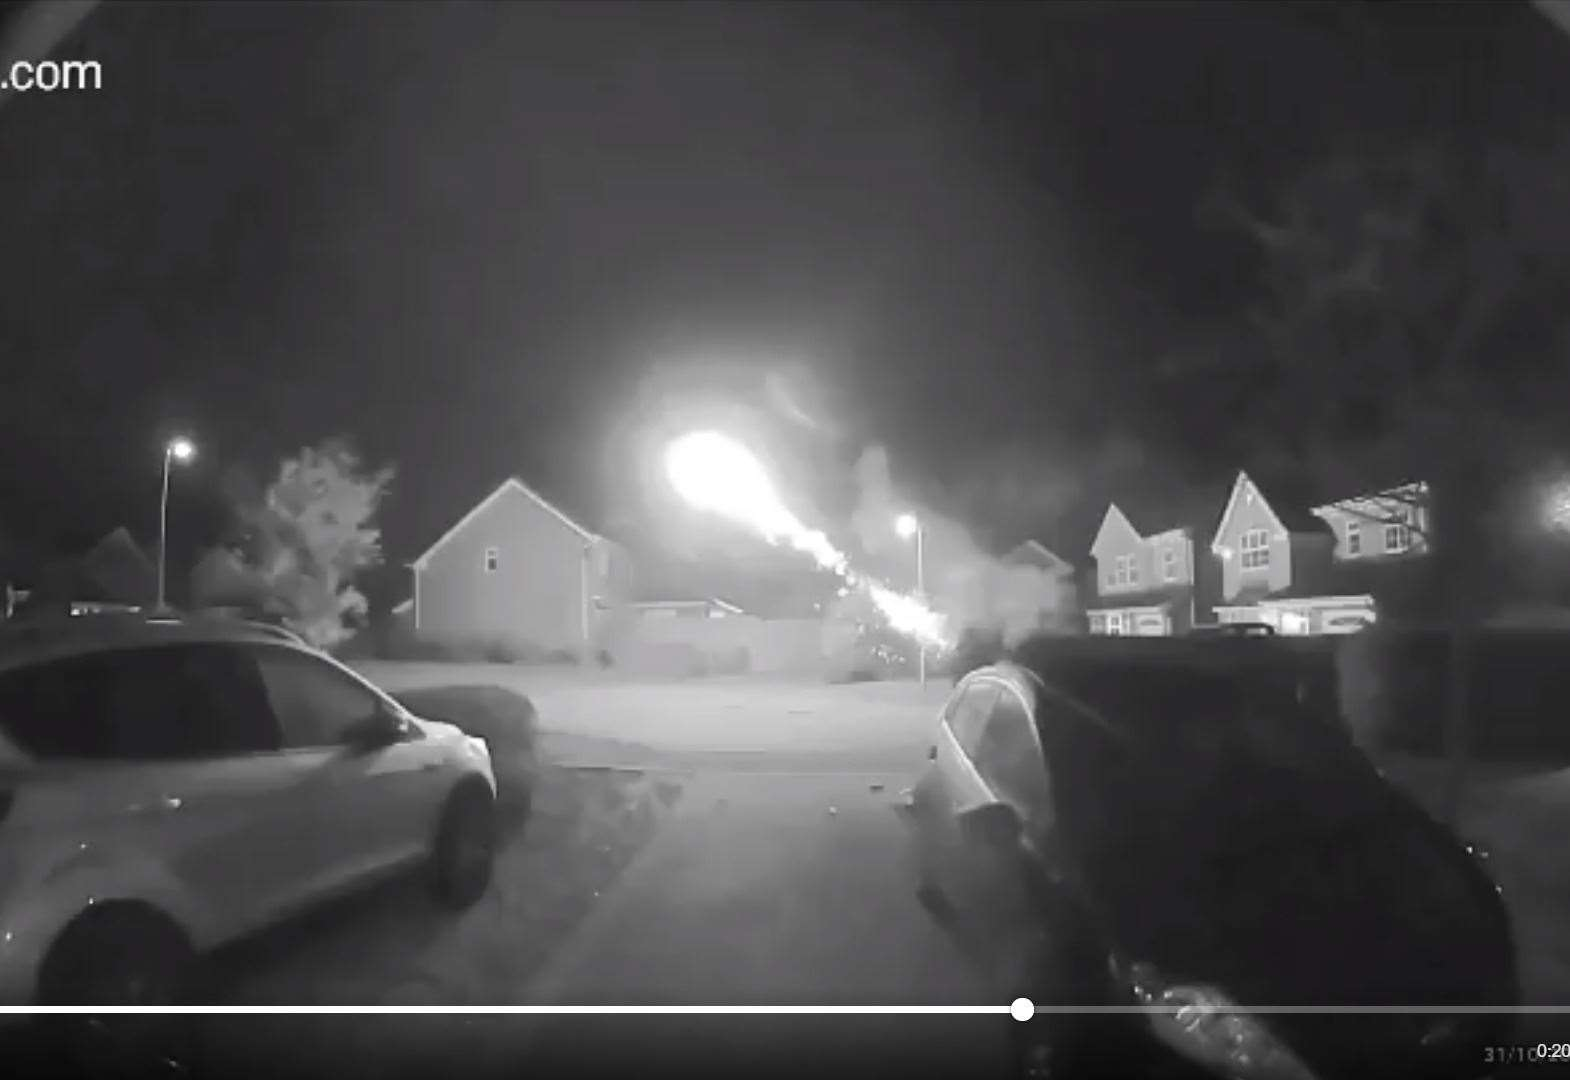 Fireworks fired at police, houses and cars in Stortford in Hallowe'en disorder